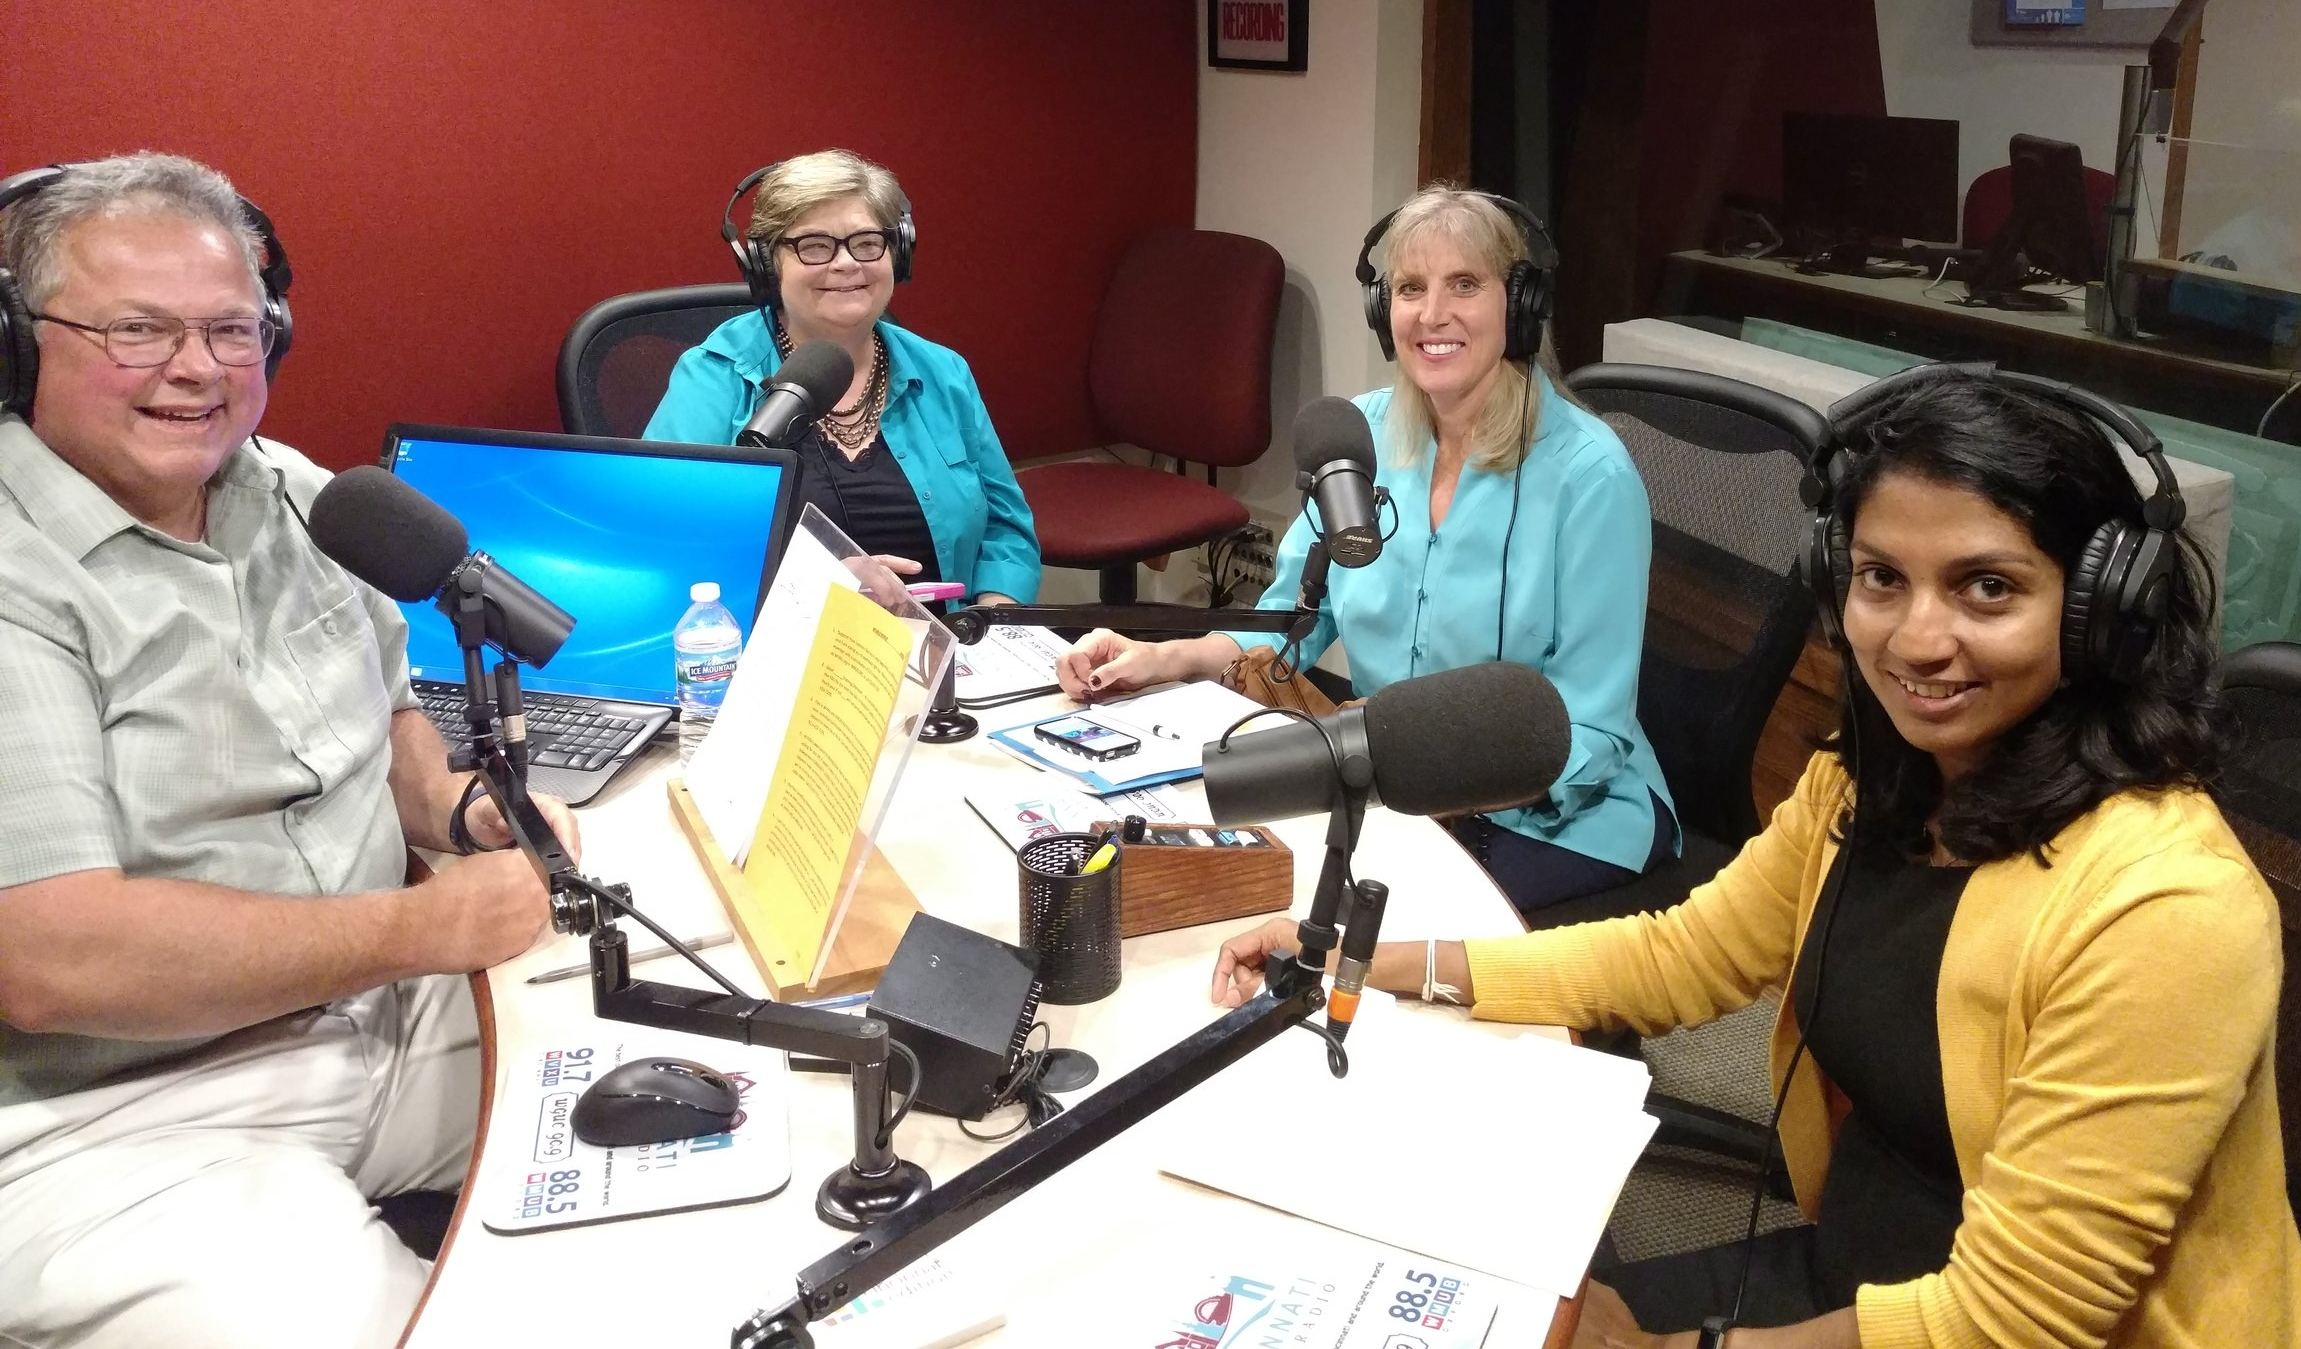 Photo: Dr. Debra Mooney (second from right) joins the WVXU public radio station to present on Xavier's immigration education efforts with the host of  Cincinnati Edition , Mark Heyne, and two grant recipients, Drs. Christine Anderson (second from left) and Thilini Ariyachandra (right) (Photo by Xavier University).